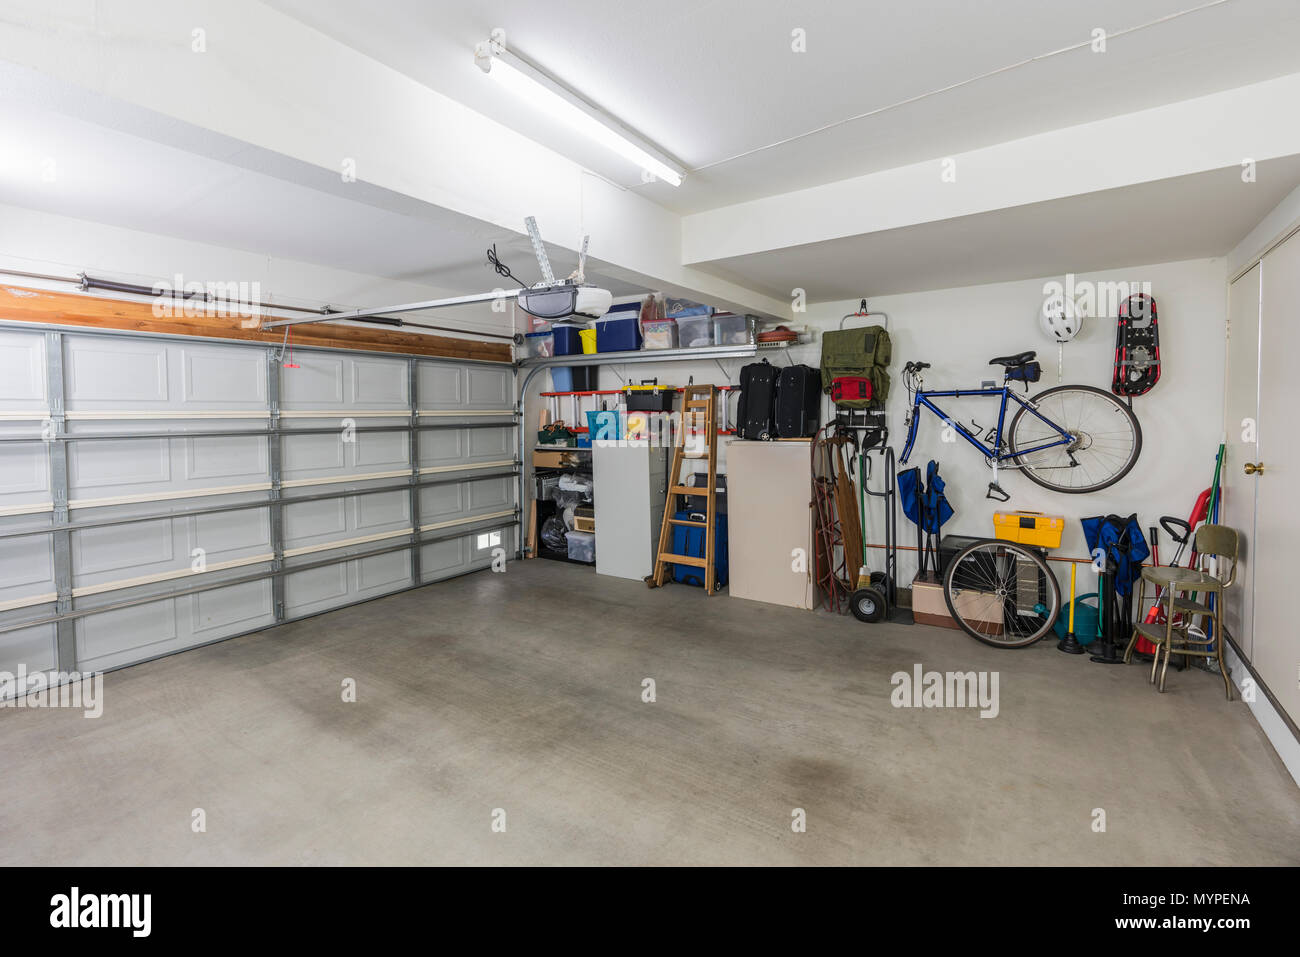 Clean suburban two car garage interior with tools, file cabinets and sports equipment. - Stock Image